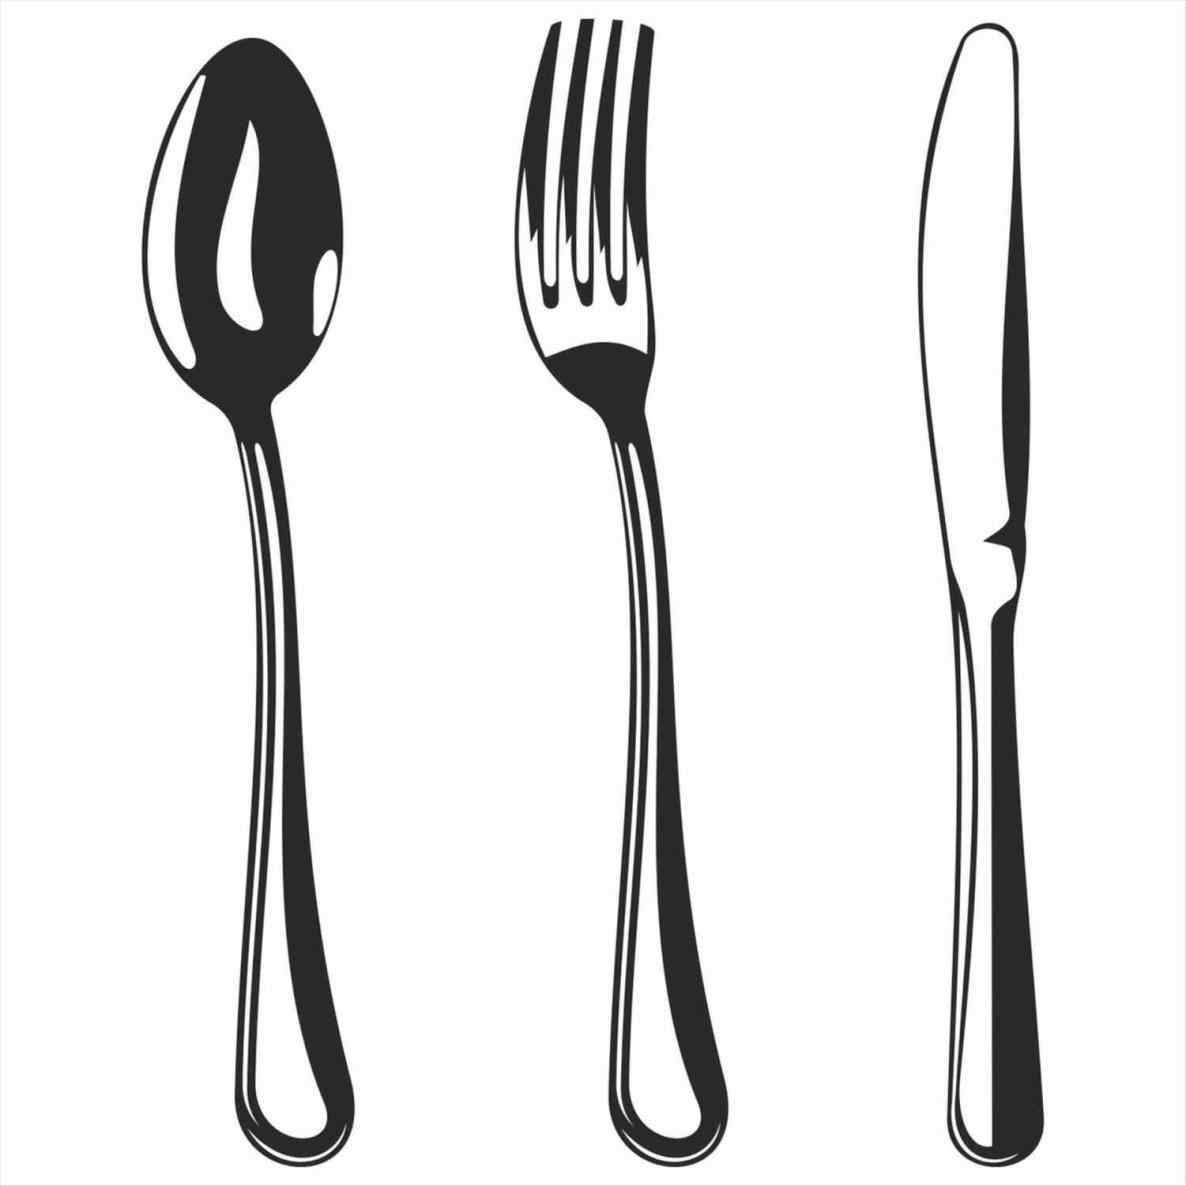 Stunning Color The Kitchen Utensils Clipart Black And White.